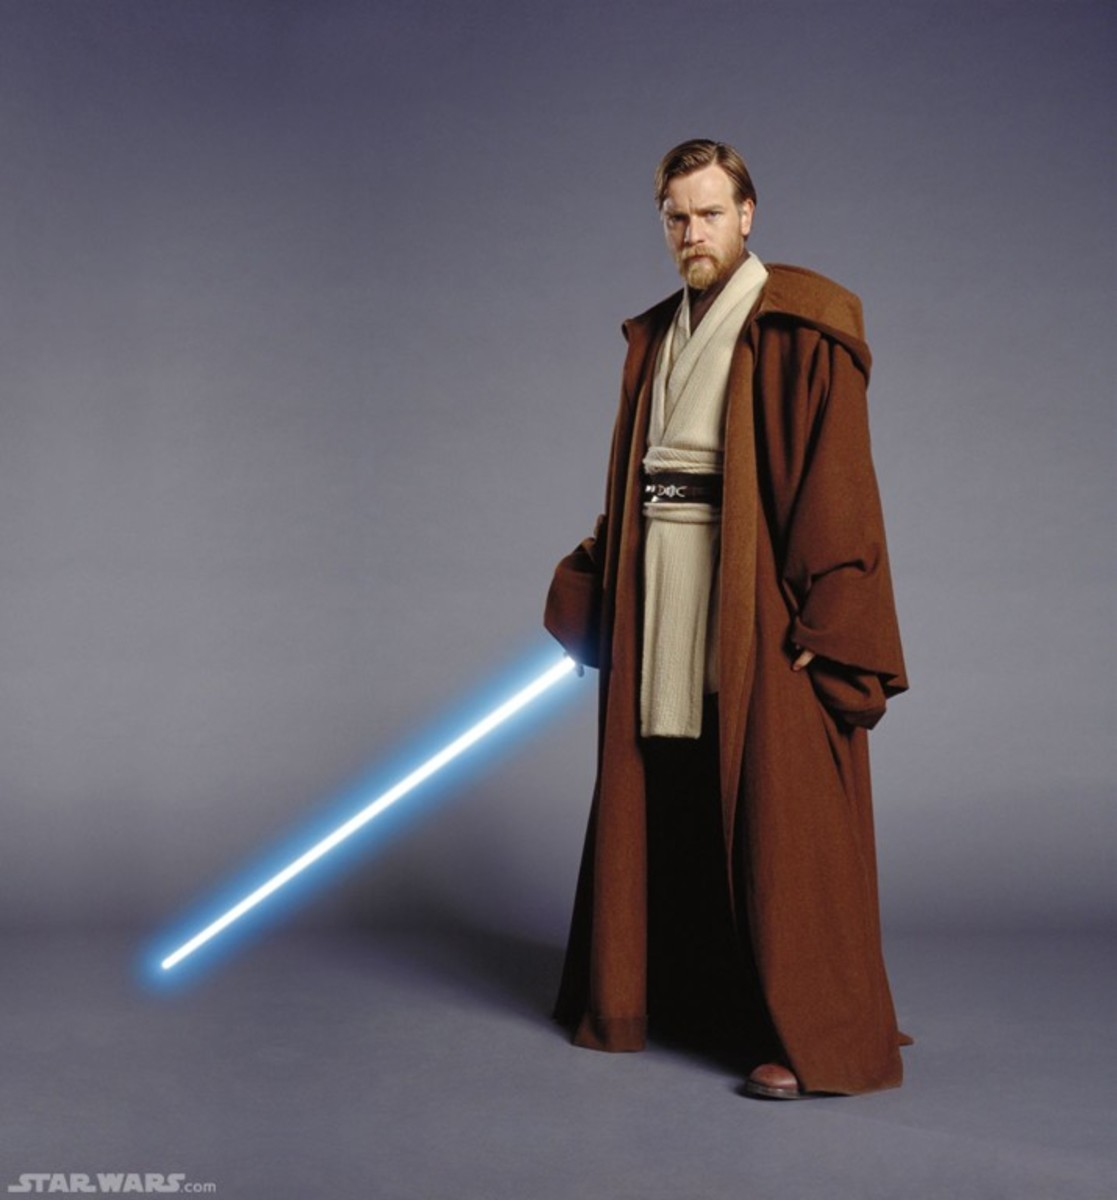 Full Jedi costume with robe